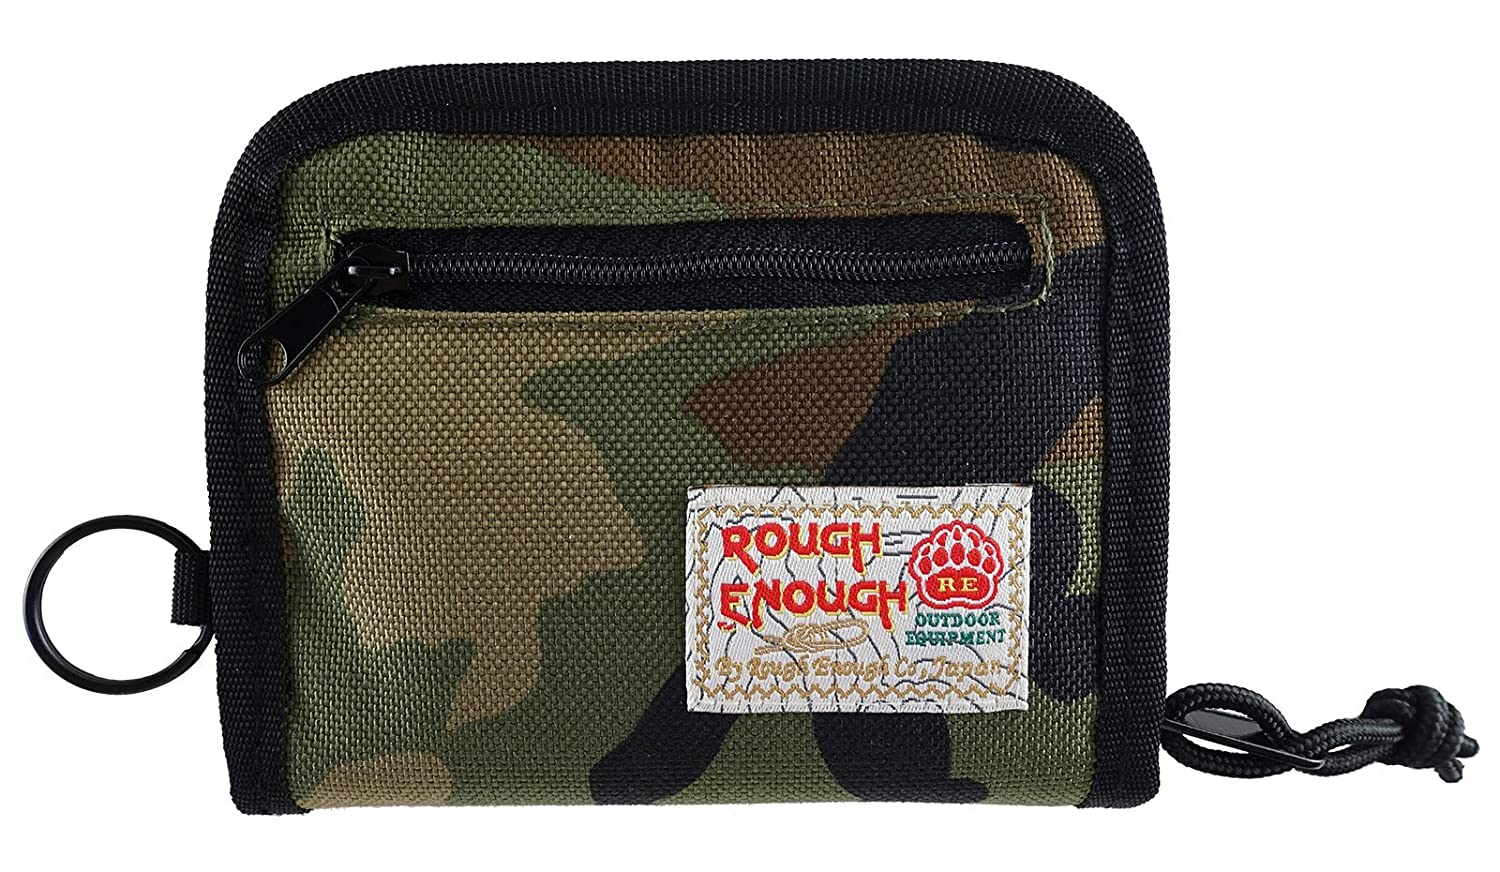 Billetera deportiva de nailon de Rough Enough camuflaje